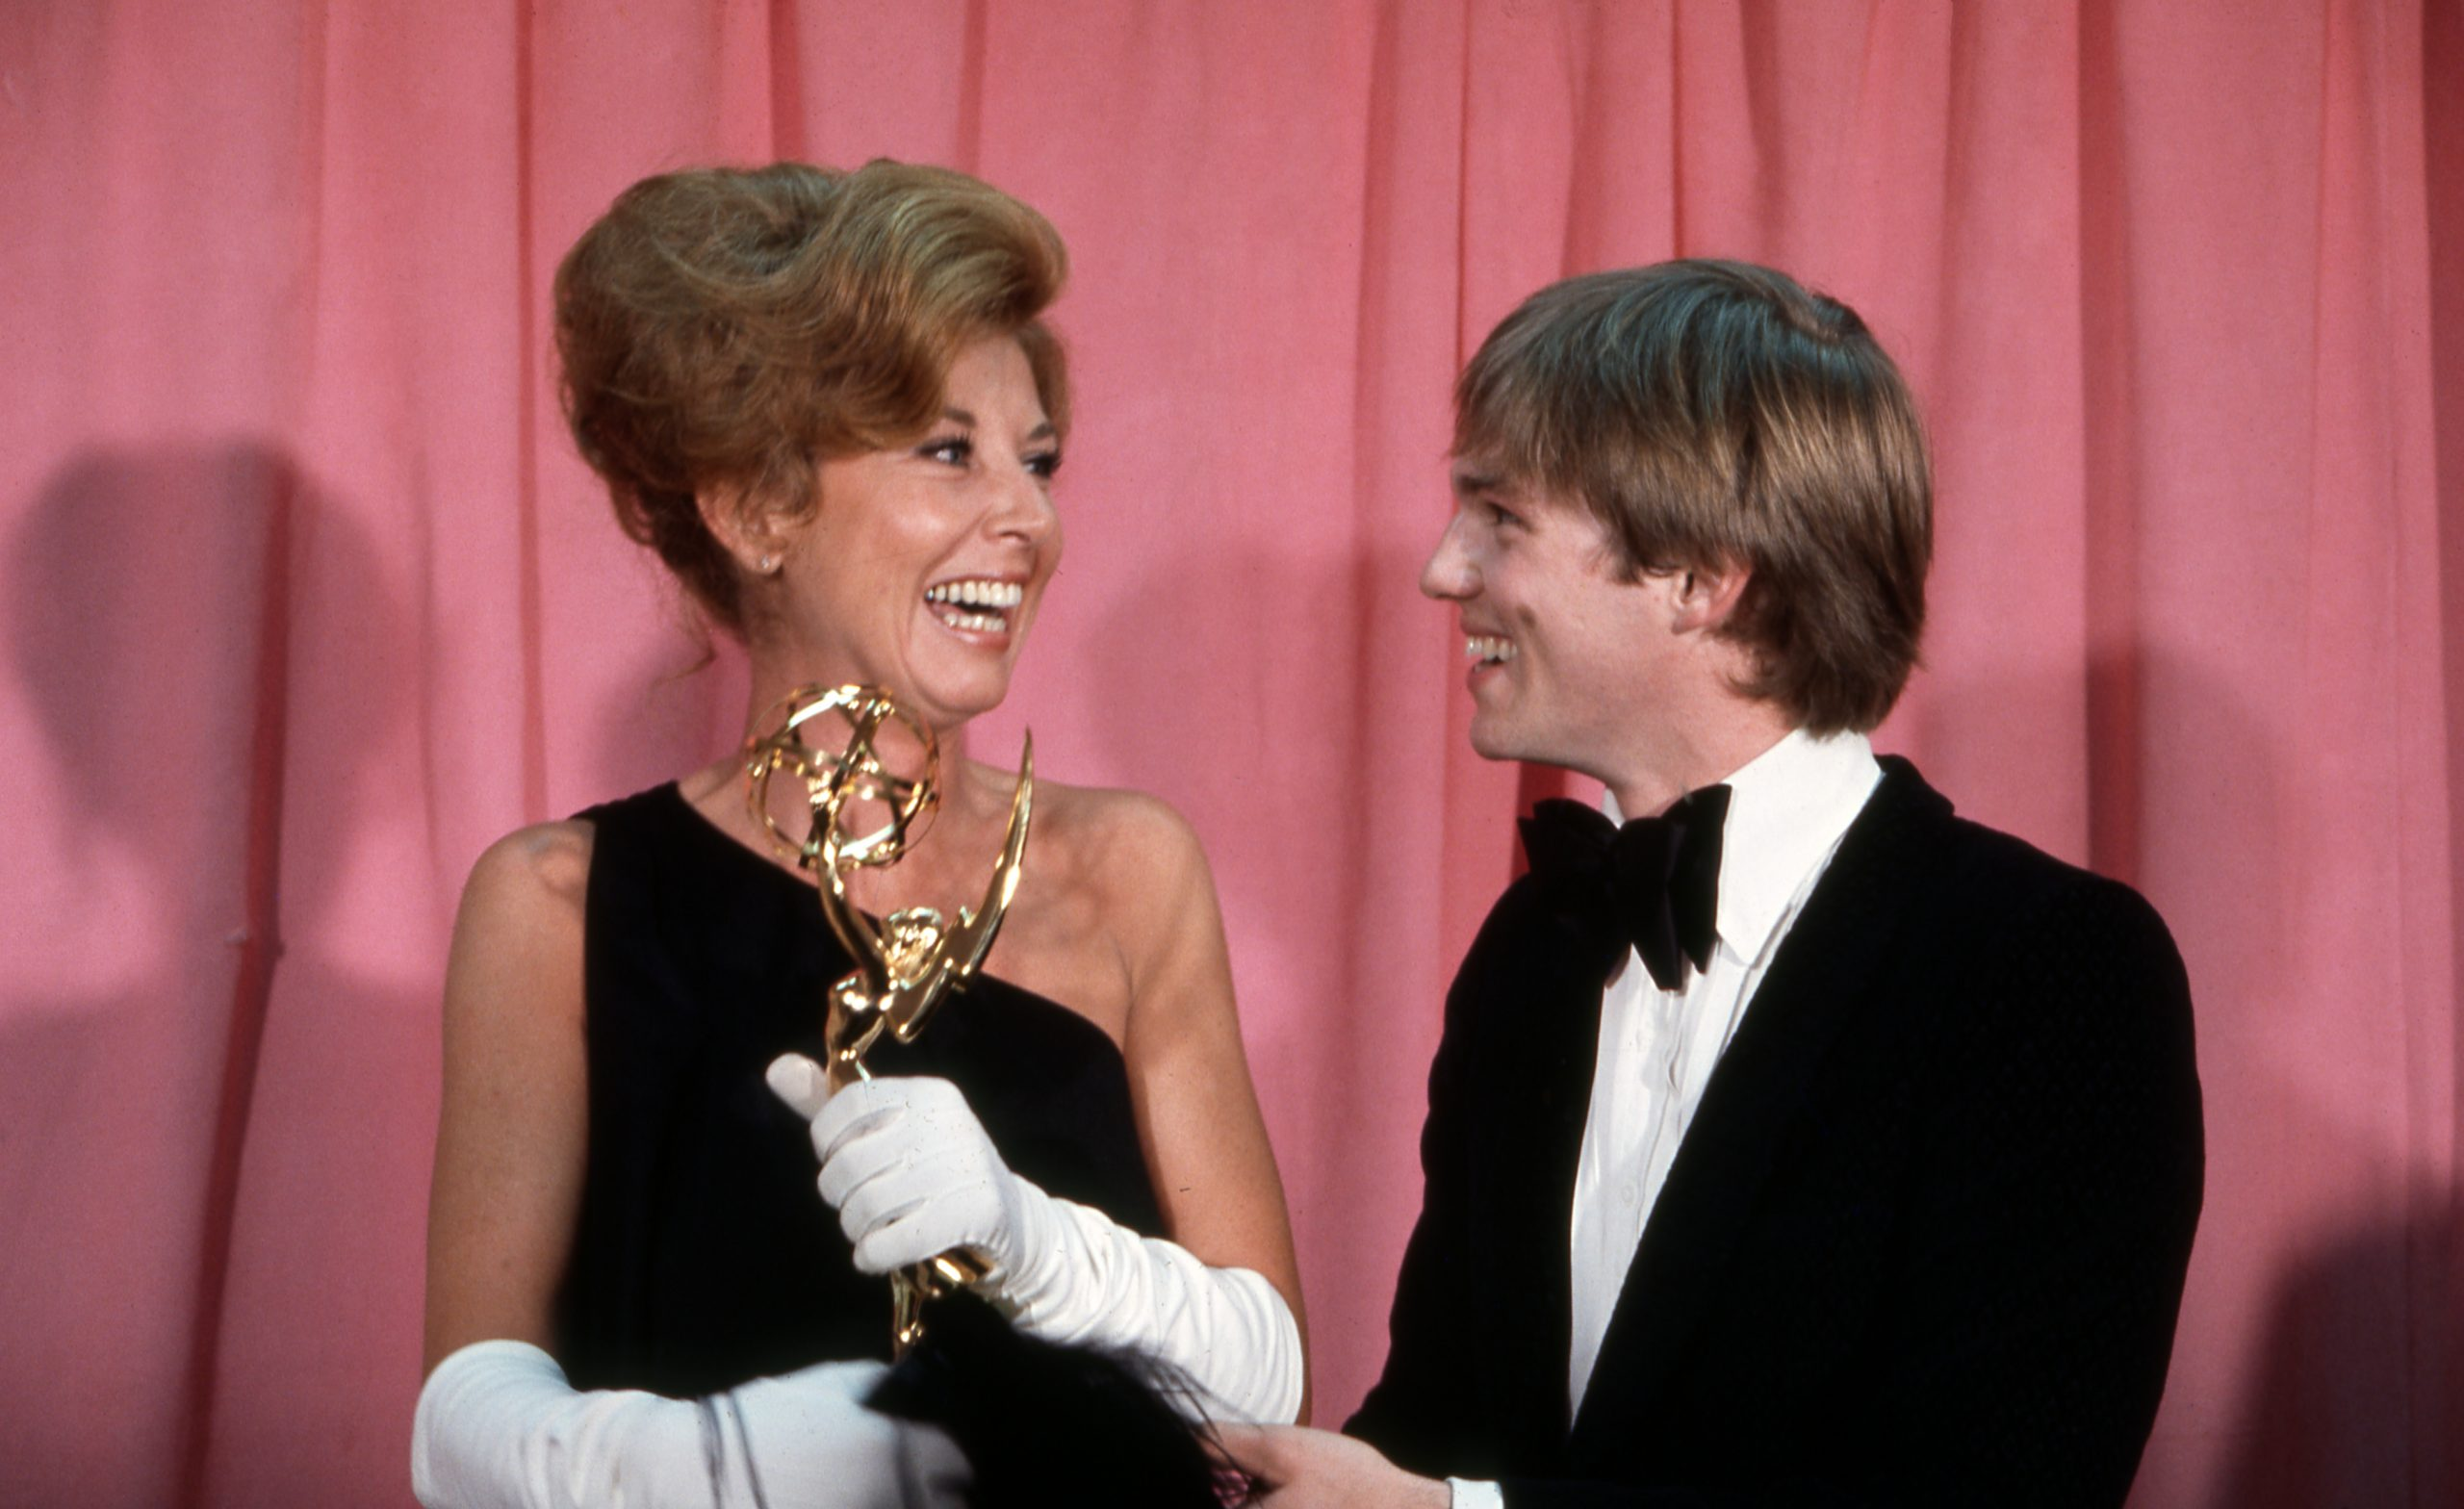 Michael Learned and Richard Thomas at the Emmys